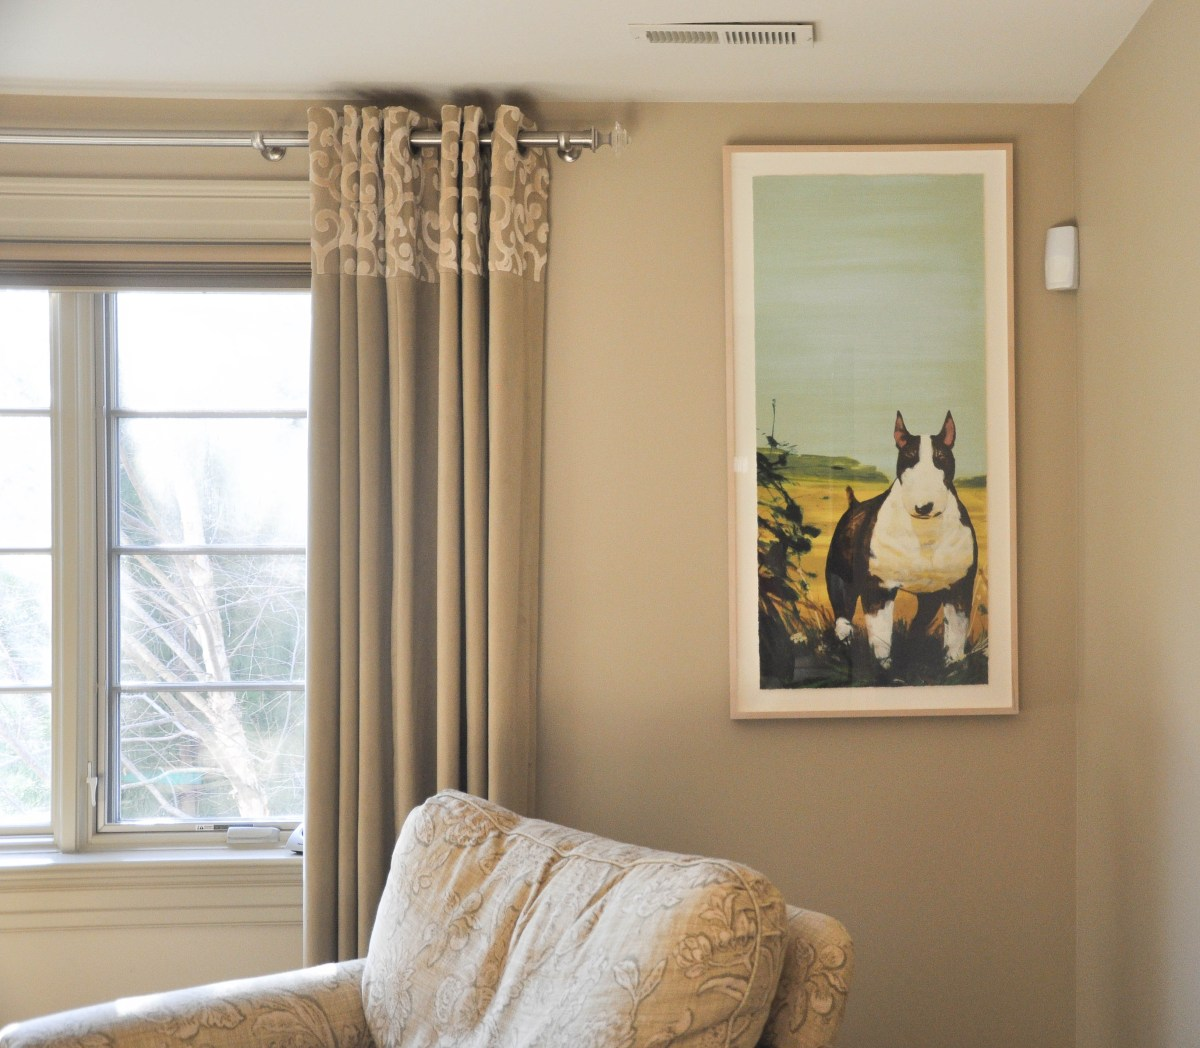 An artwork hanging mistake is highlighted by a large framed art print of a black and white terrier dog that is displayed too high and off-center.